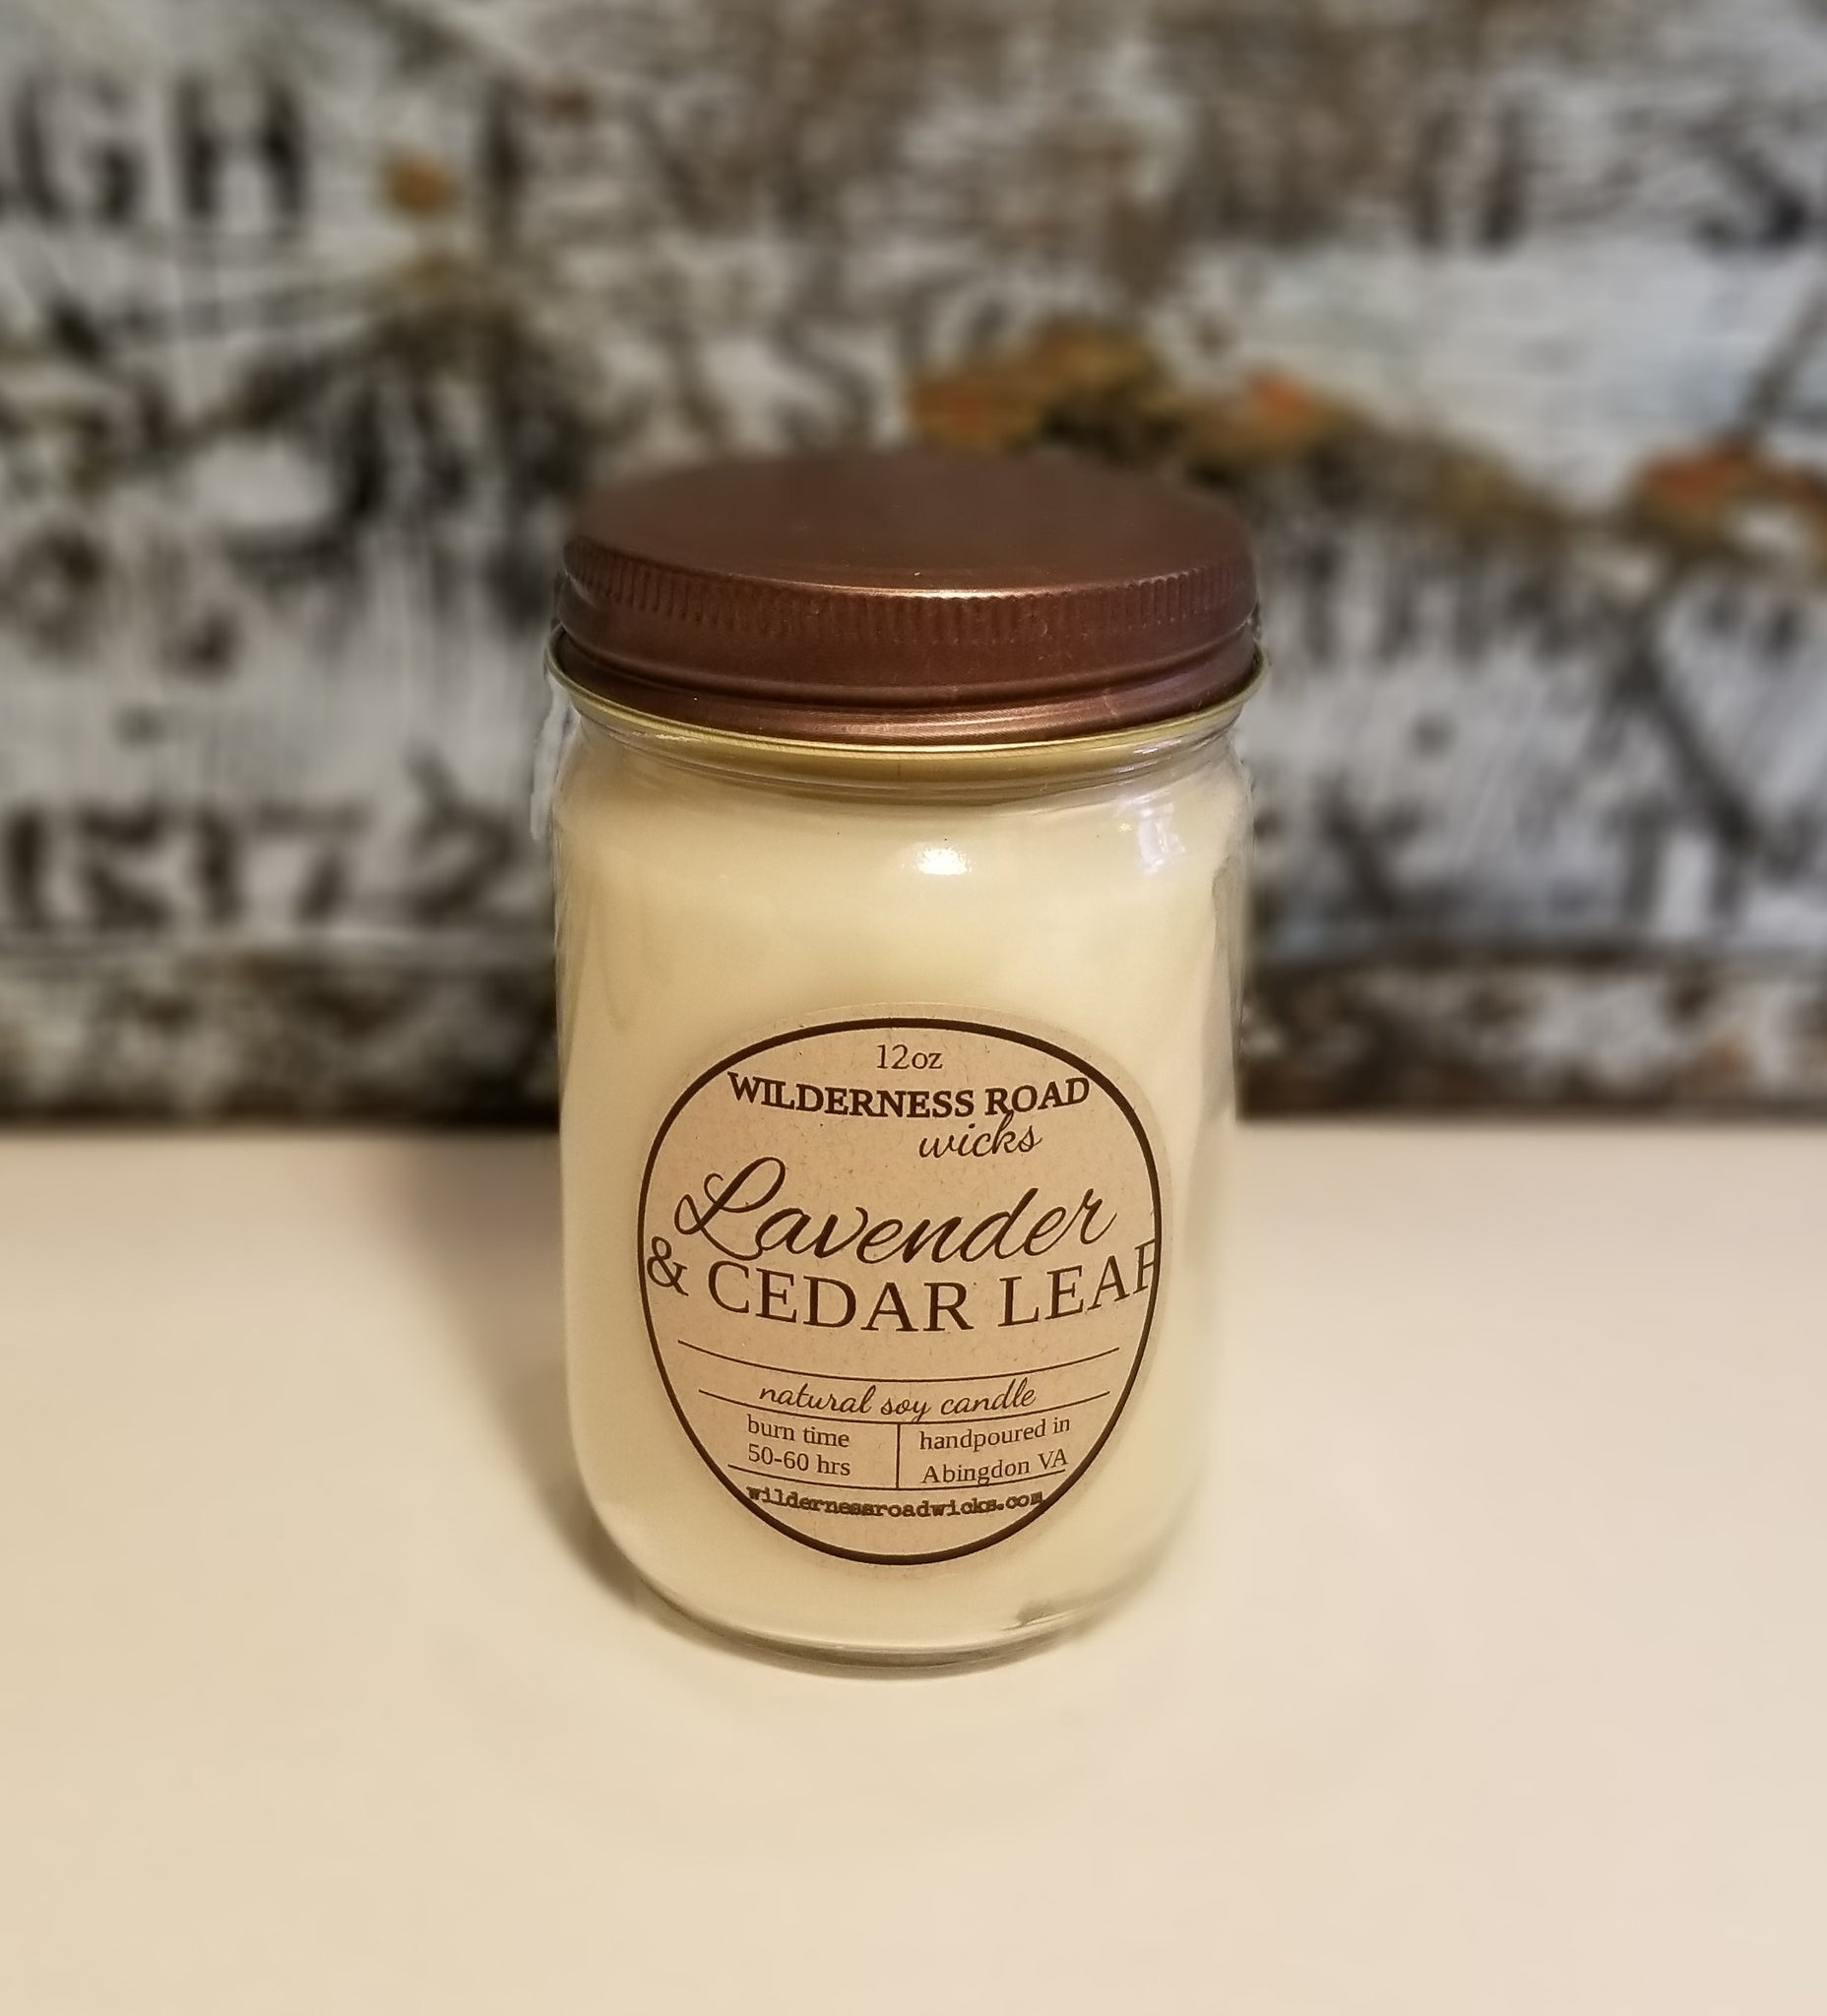 Lavender & Cedar Leaf 12 oz. Natural Soy Candle